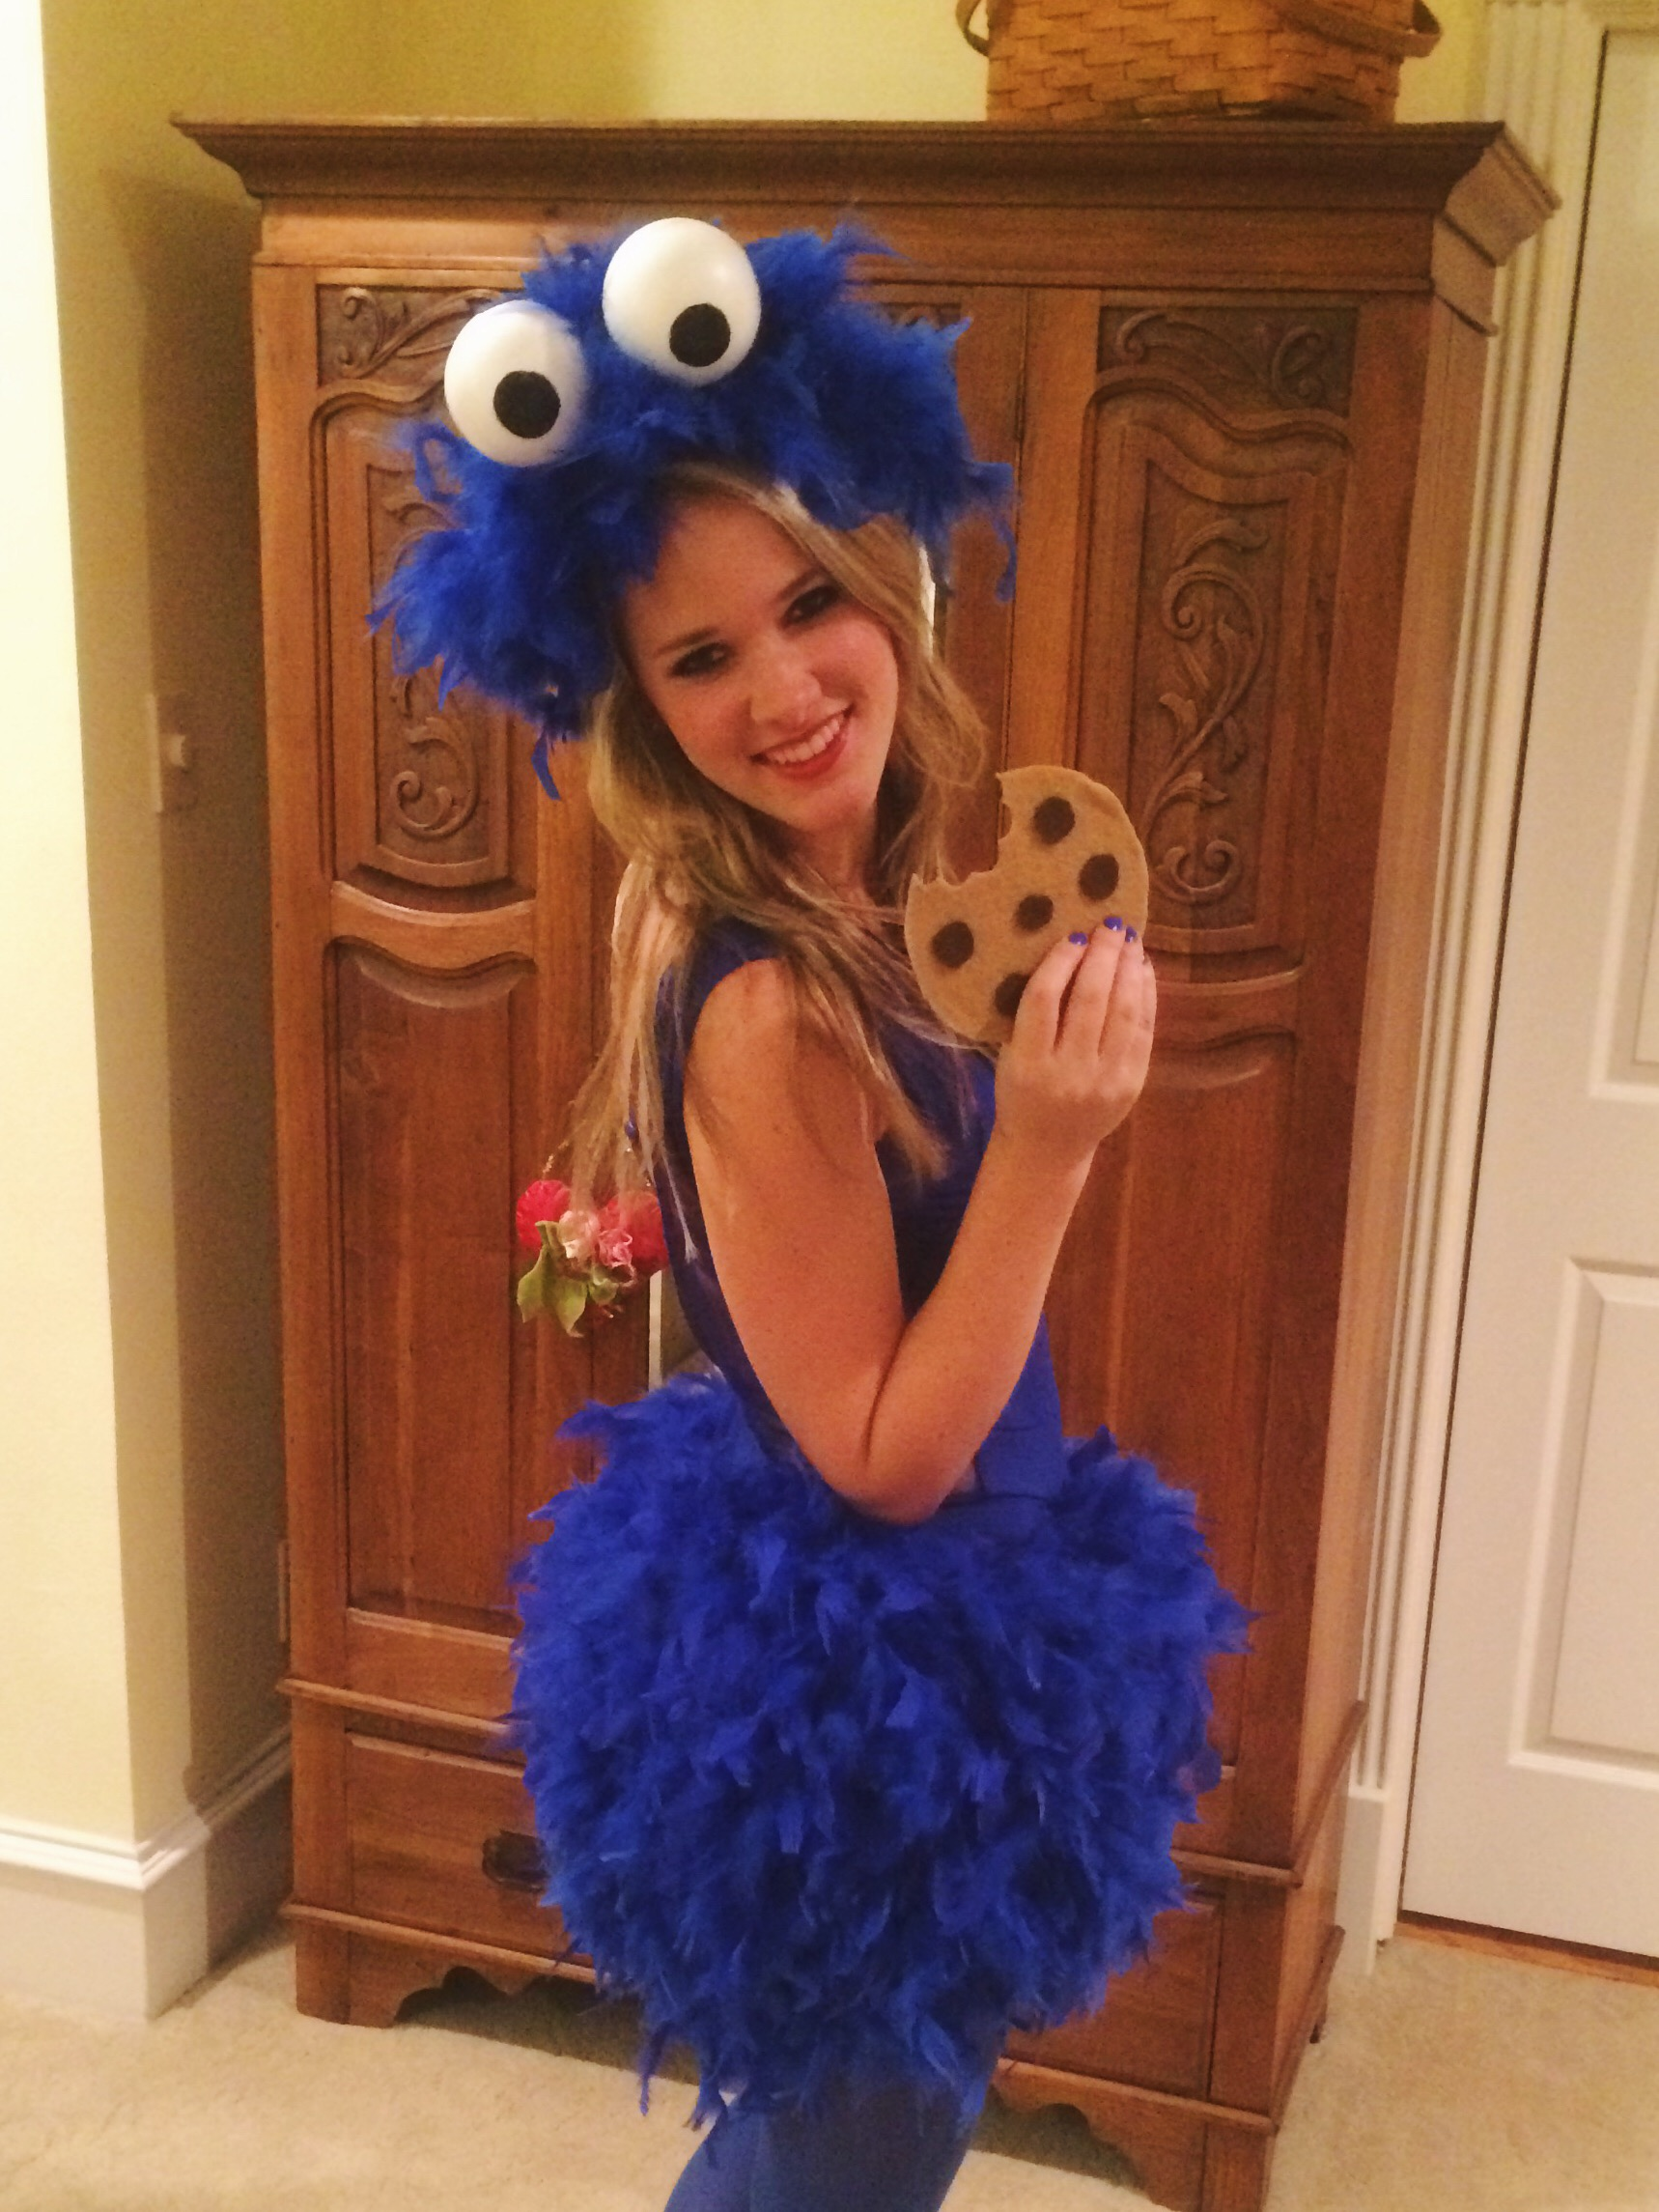 Ms. Cookie Monster